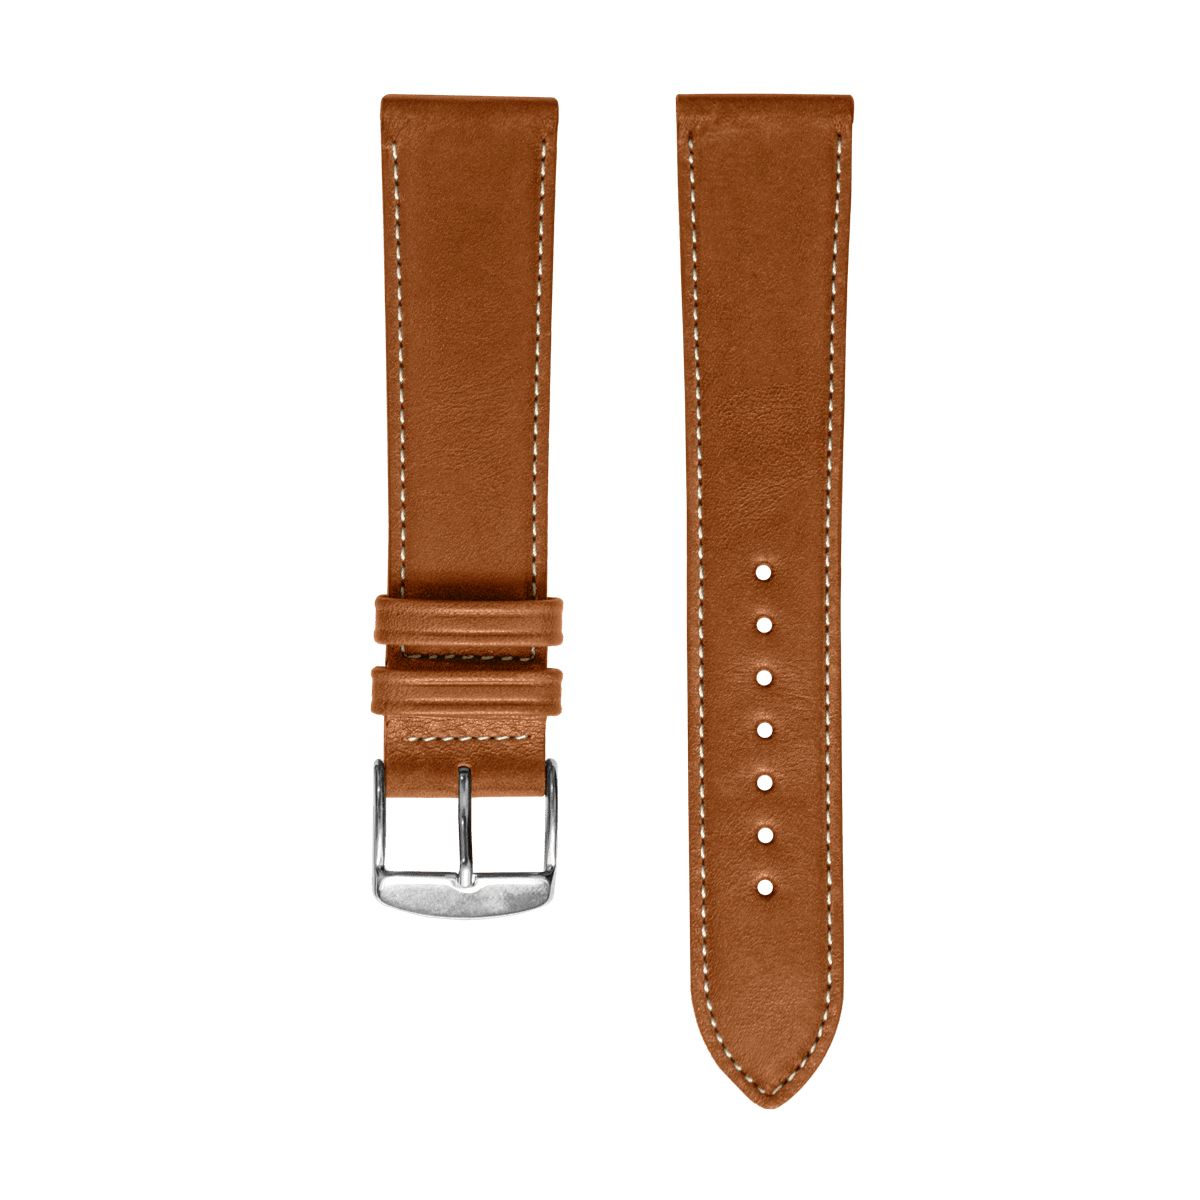 Charlie Paris Leather Watch Band